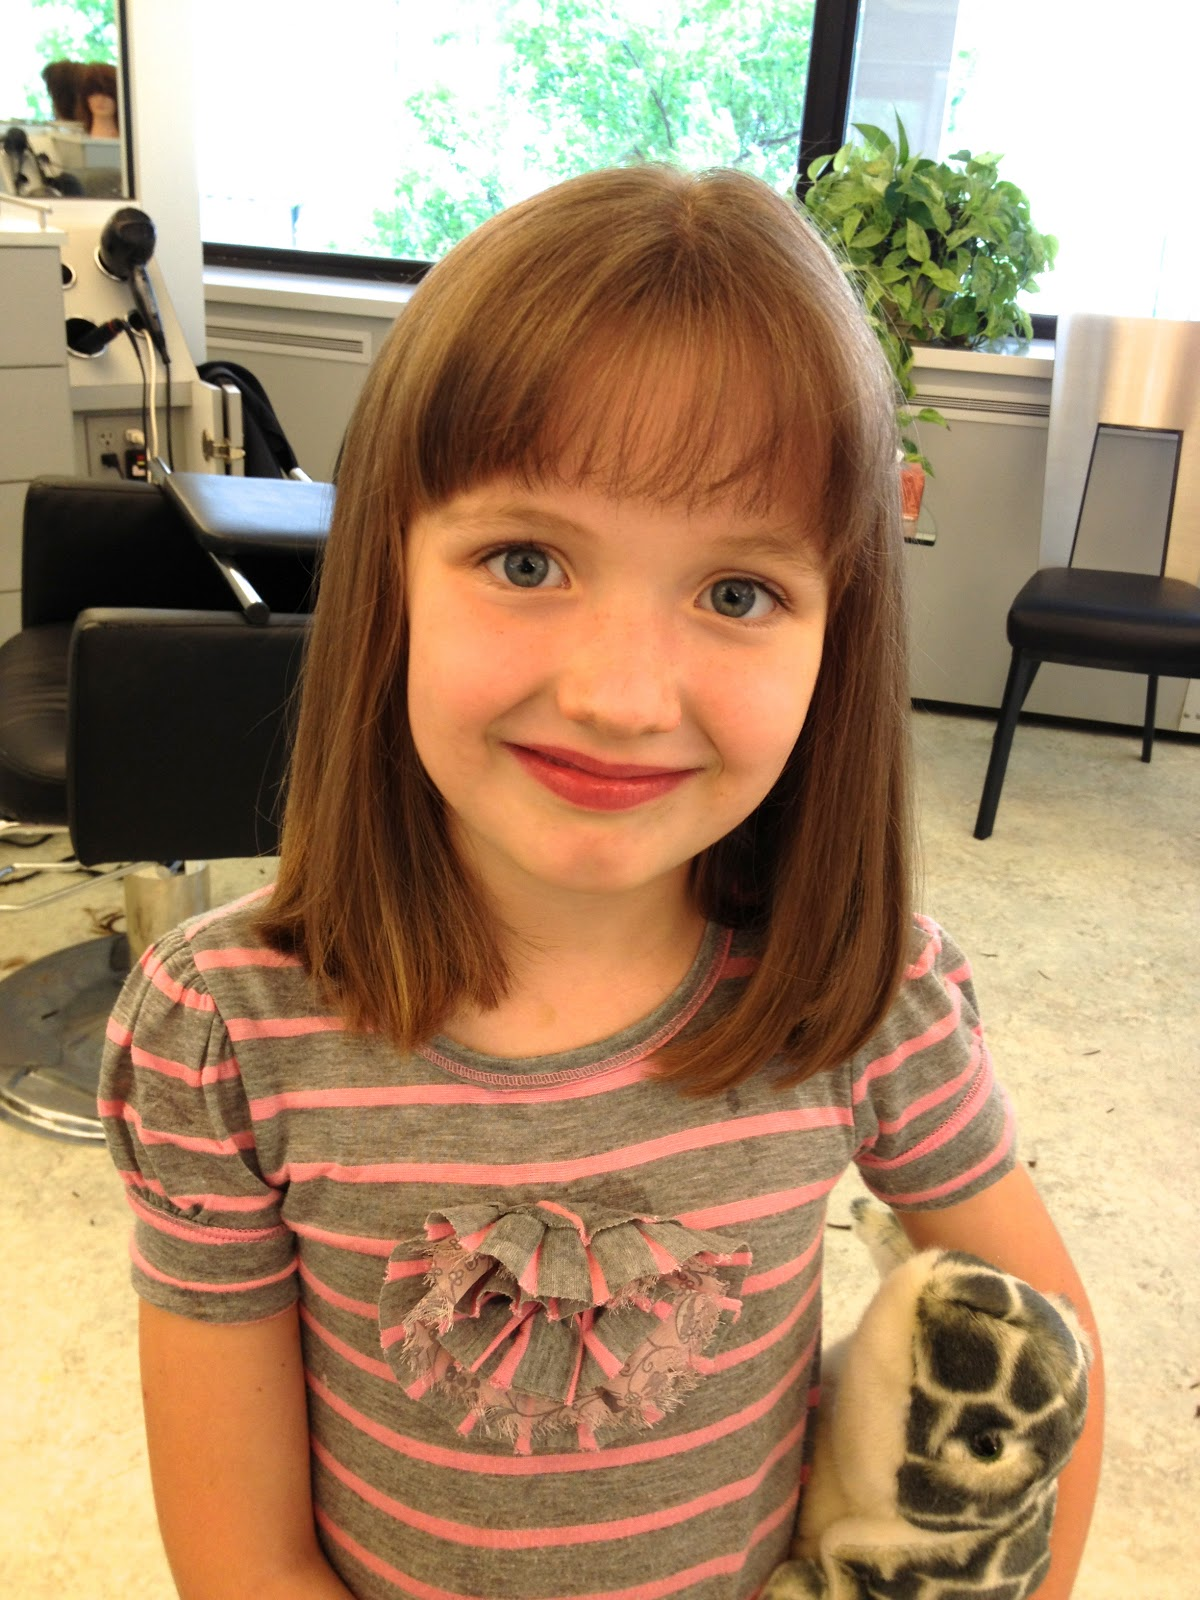 50 Beautiful 8 Year Old Hairstyles